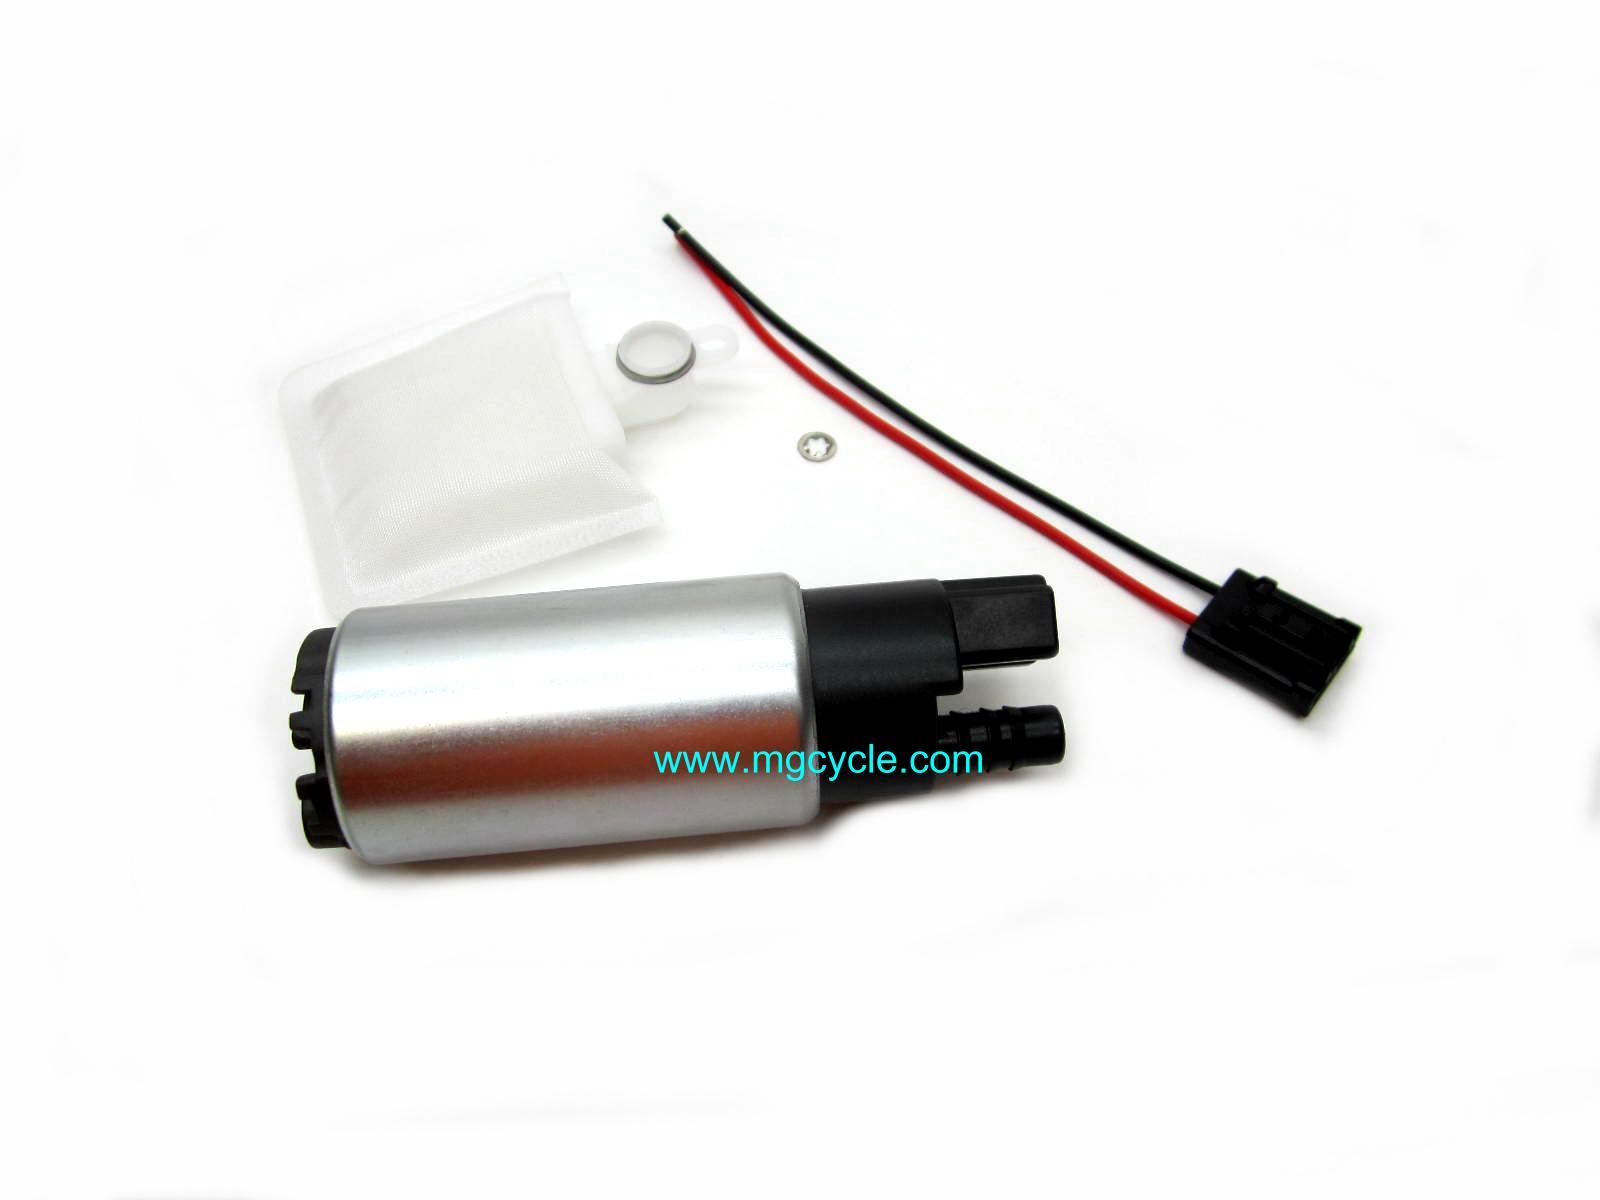 Internal fuel pump Guzzis 2003 to 2019, Ducati BMW